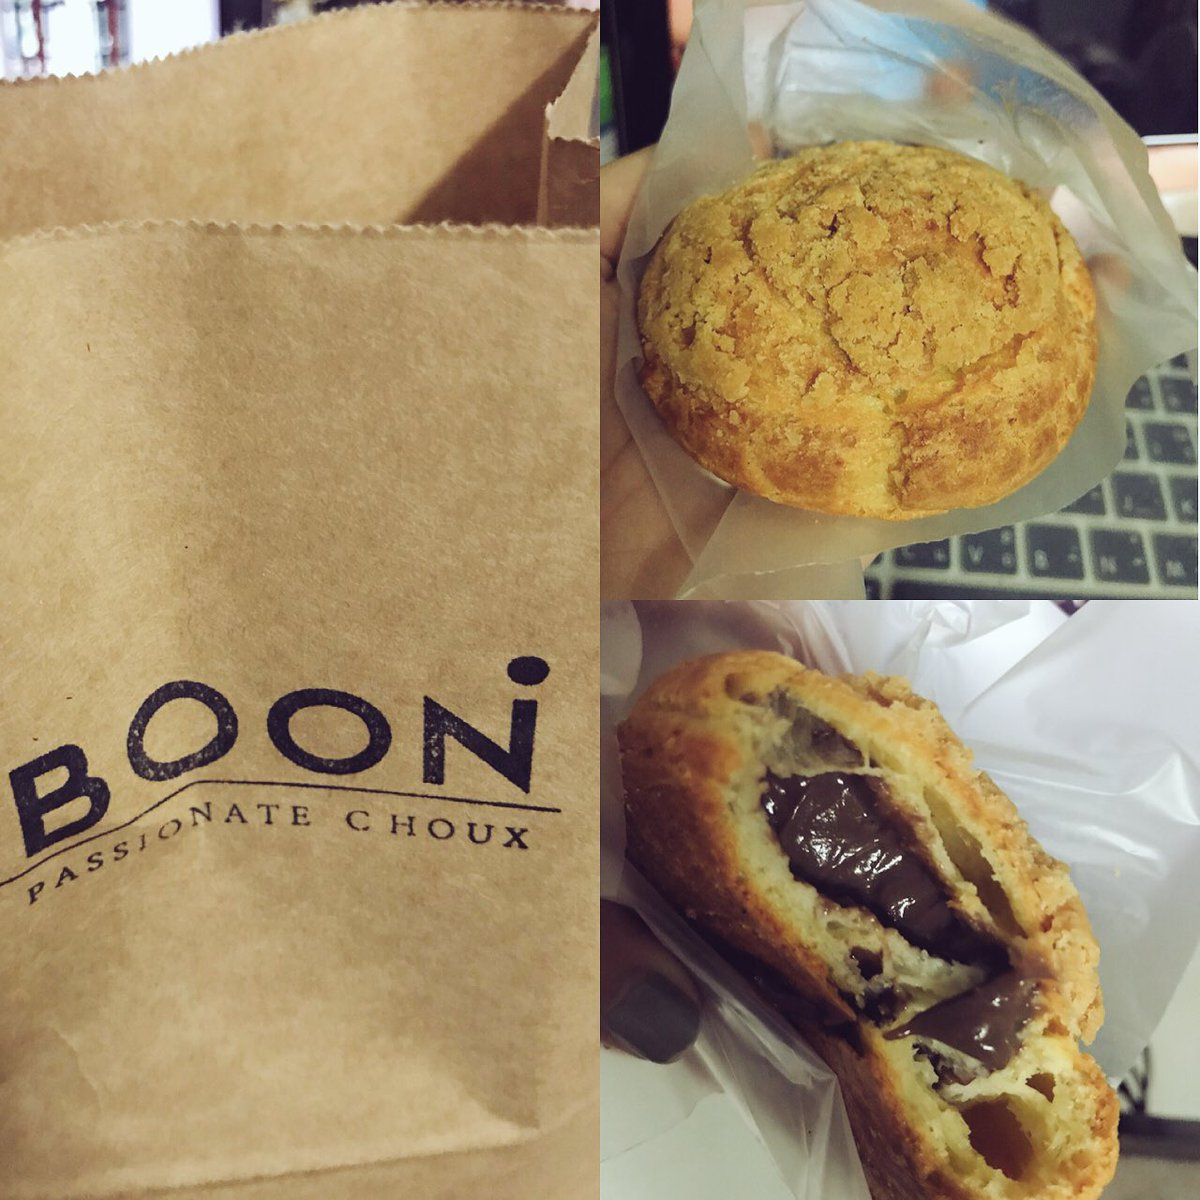 boon photos and hastag